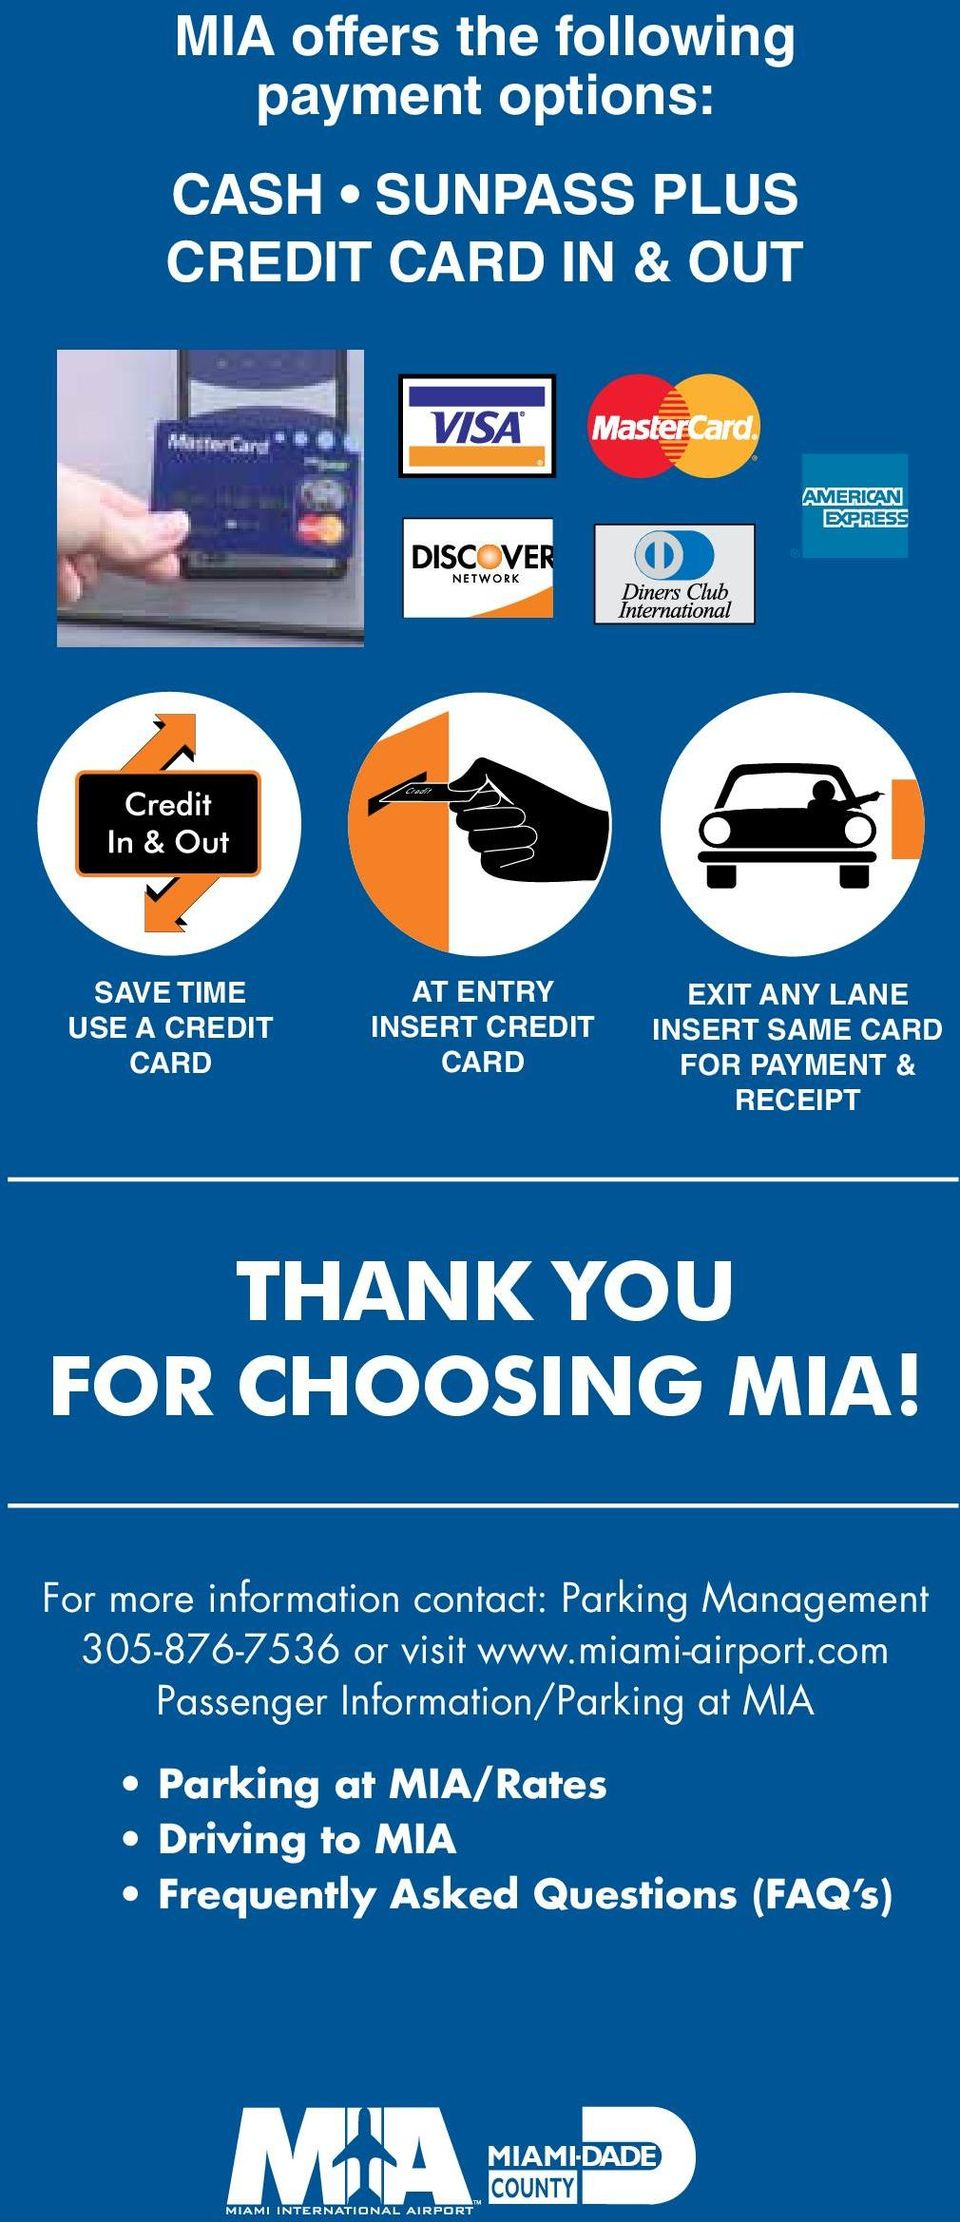 choosing mia! or more information contact: Parking Management 305-876-7536 or visit www.miami-airport.